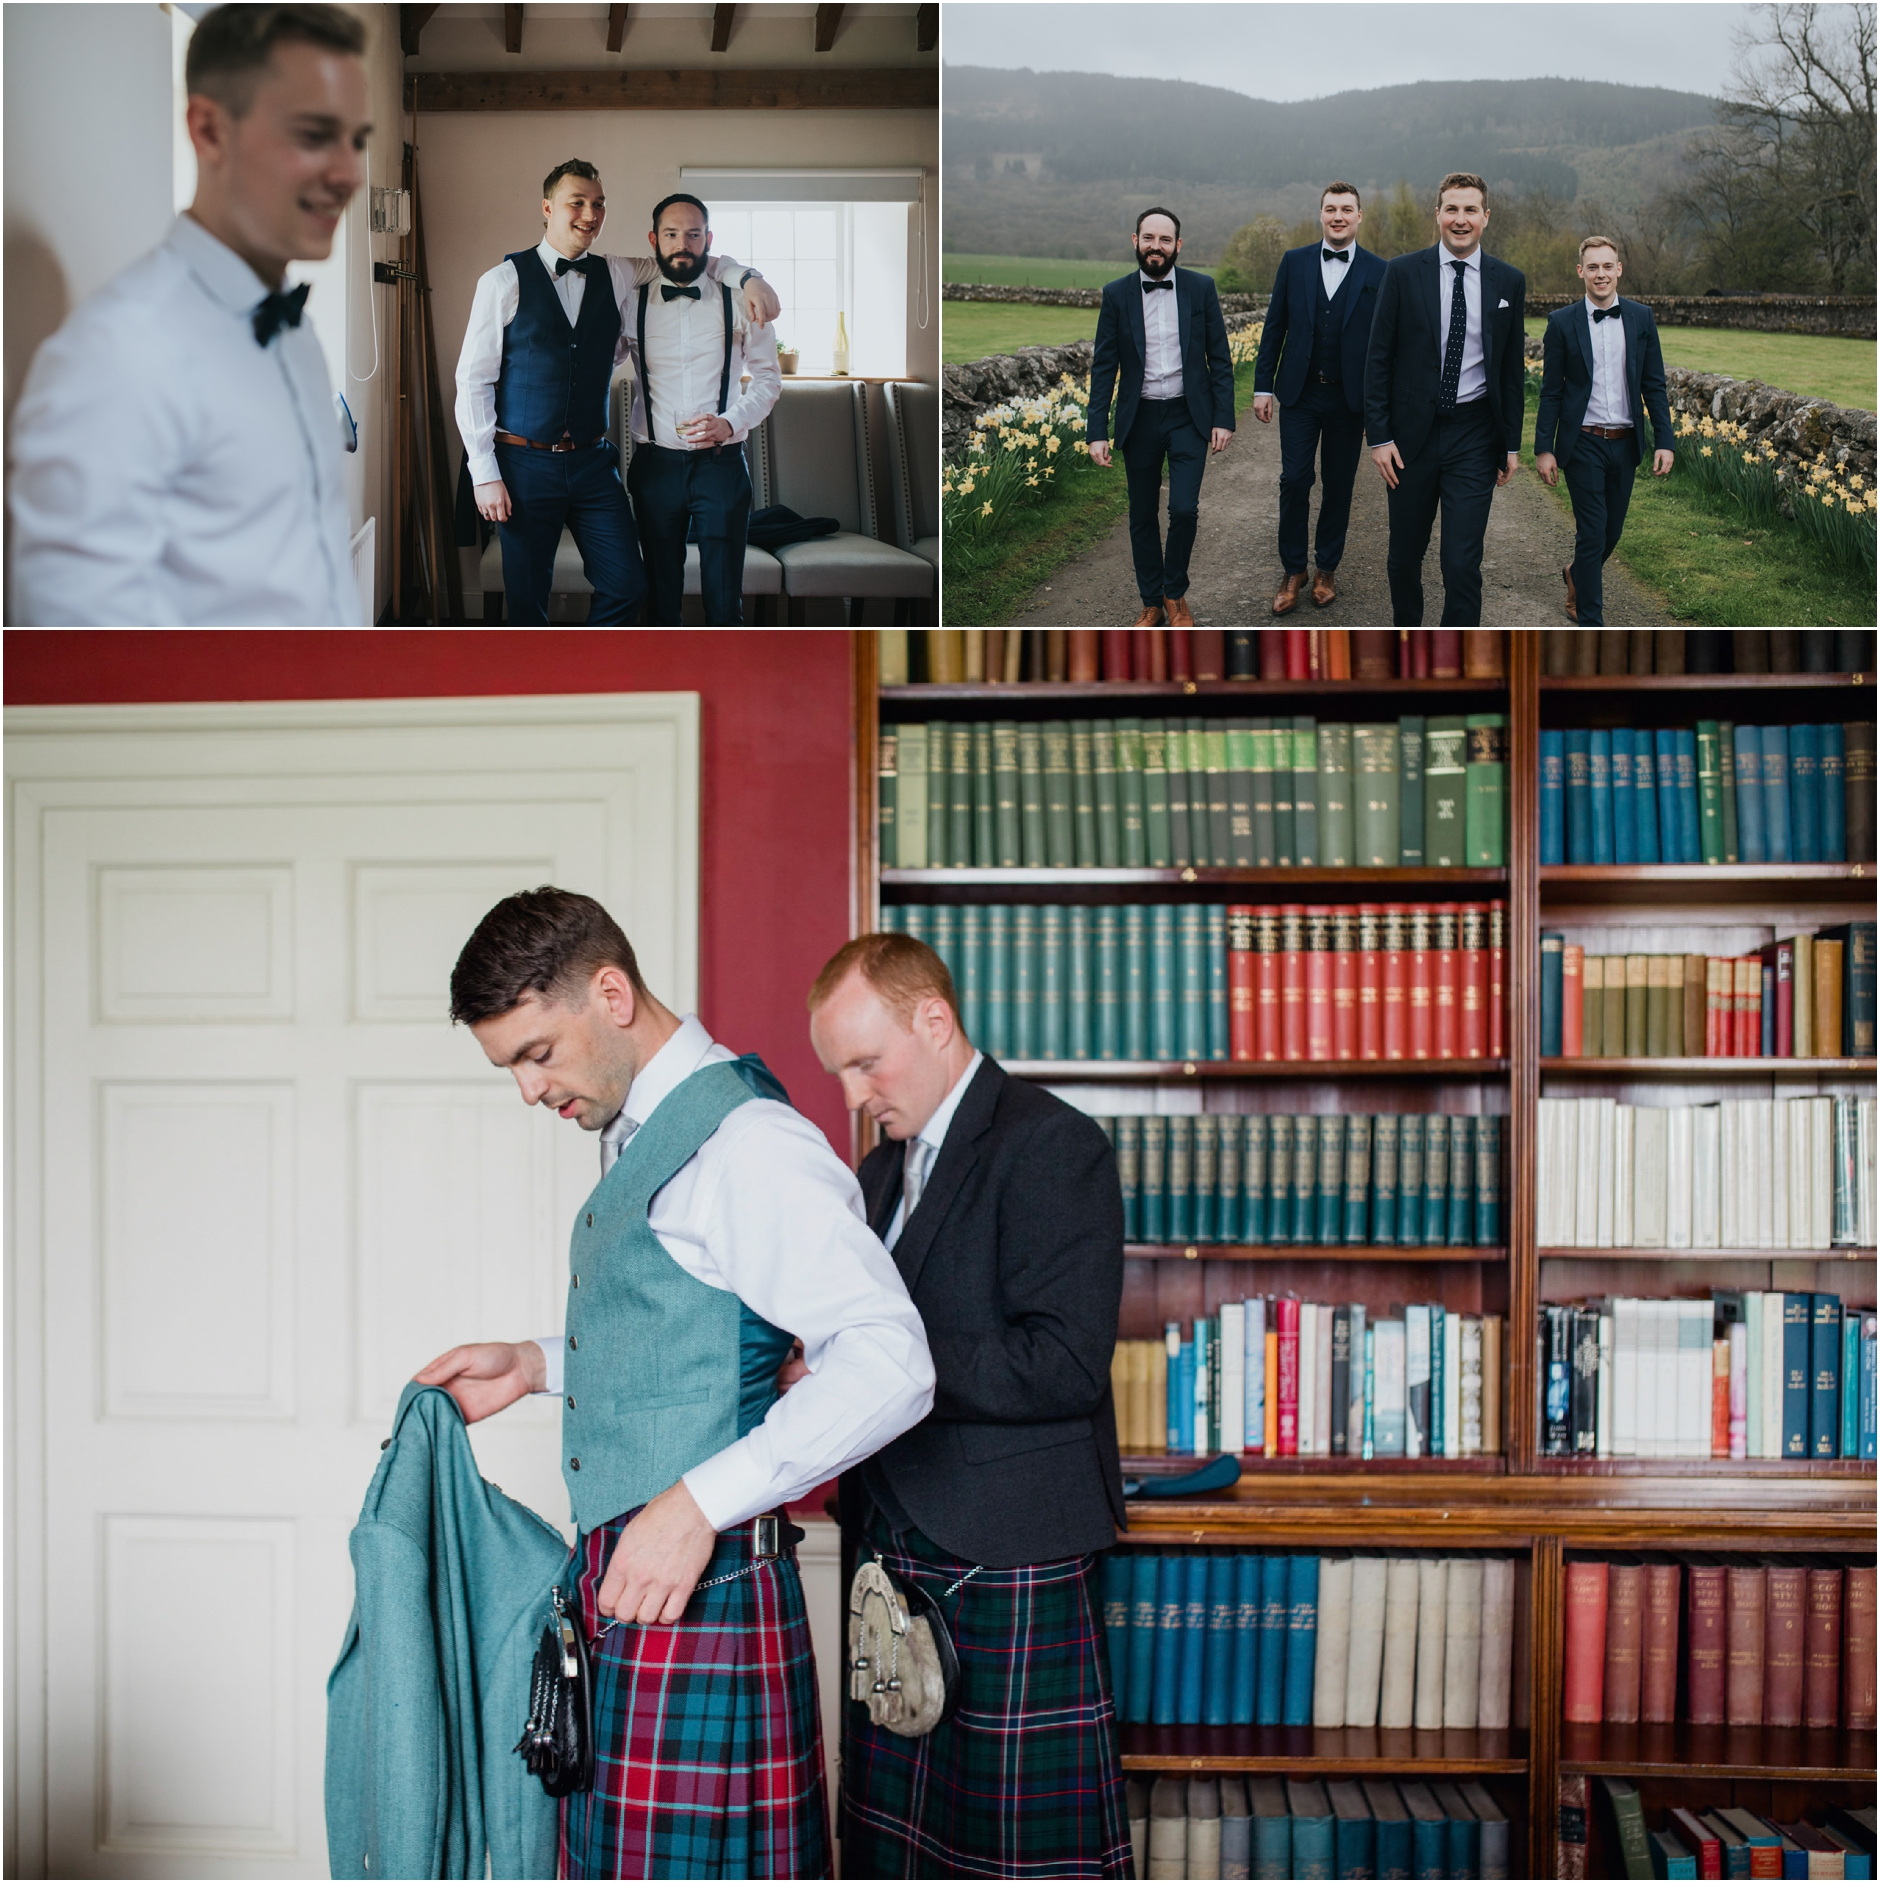 images of scottish grooms on their wedding day getting ready